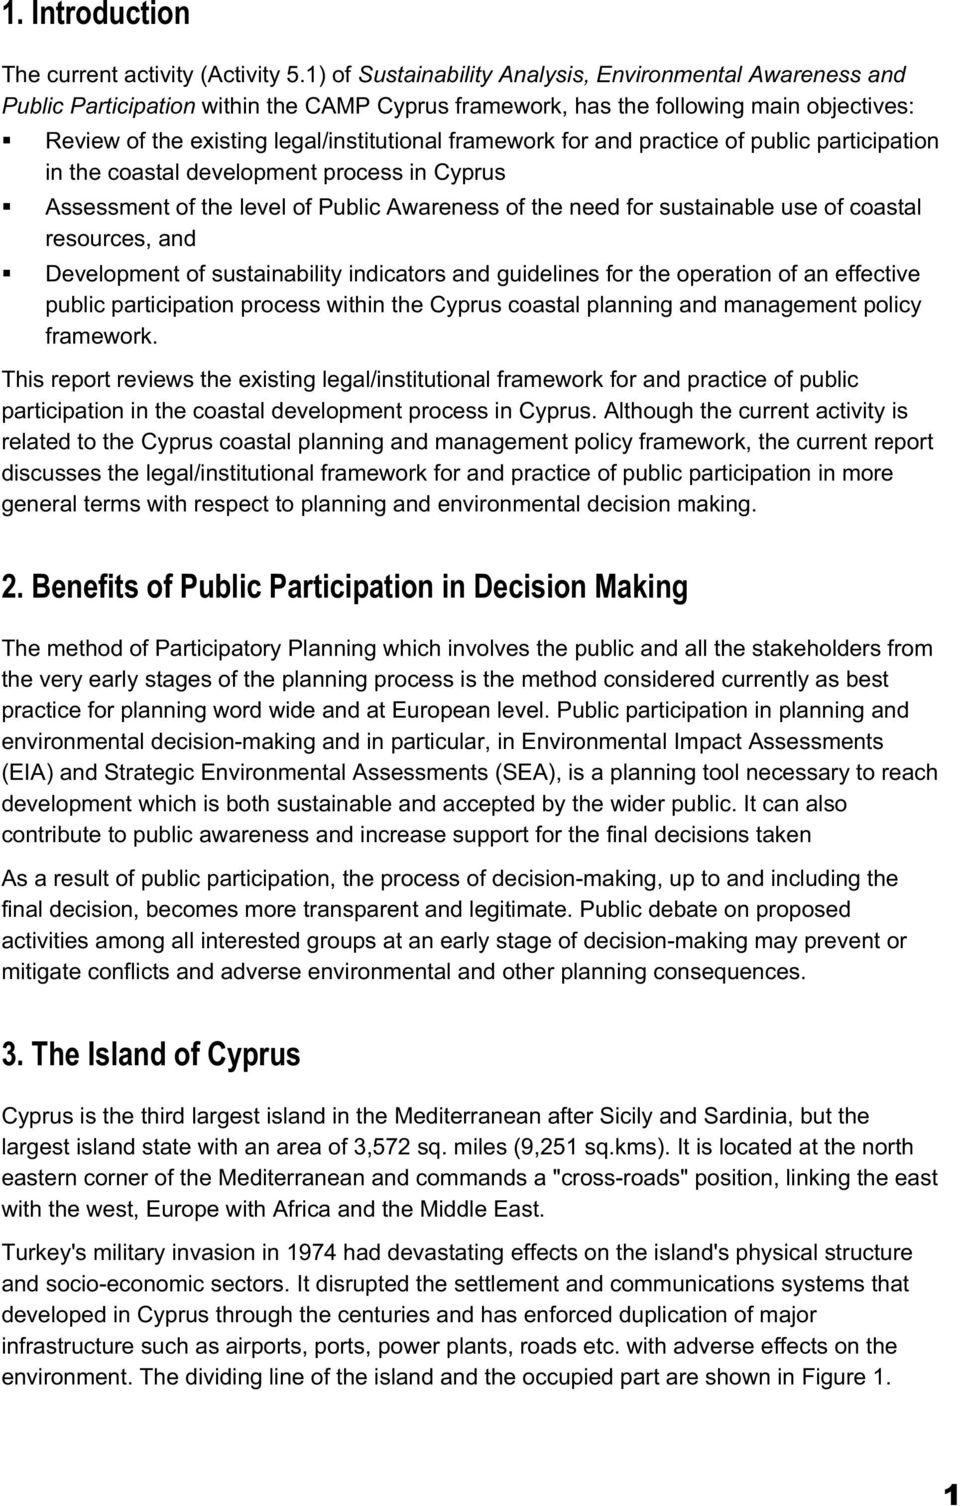 framework for and practice of public participation in the coastal development process in Cyprus Assessment of the level of Public Awareness of the need for sustainable use of coastal resources, and